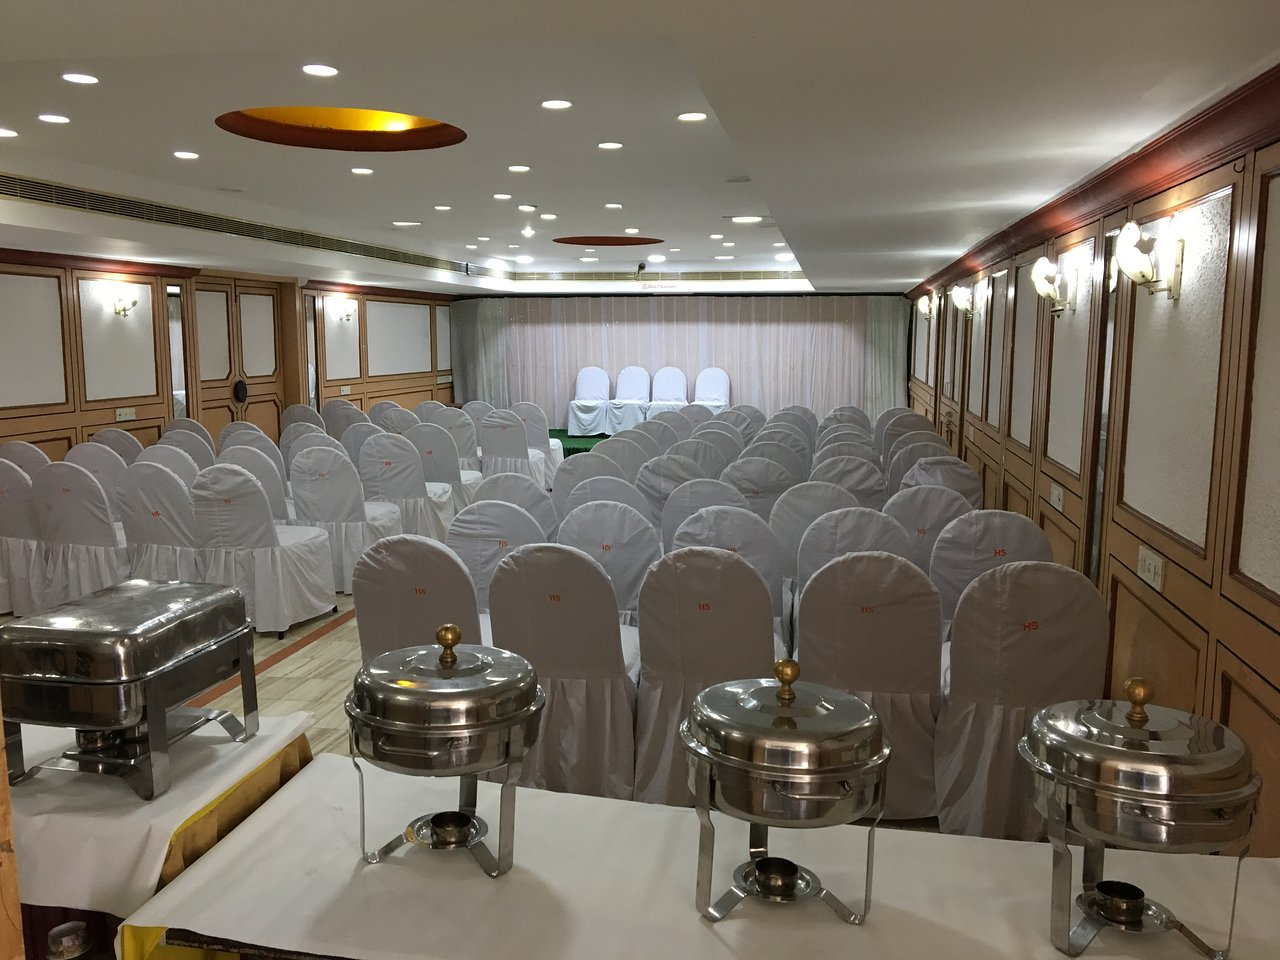 The Best Family Hotels in Guntur 2019 (with Prices